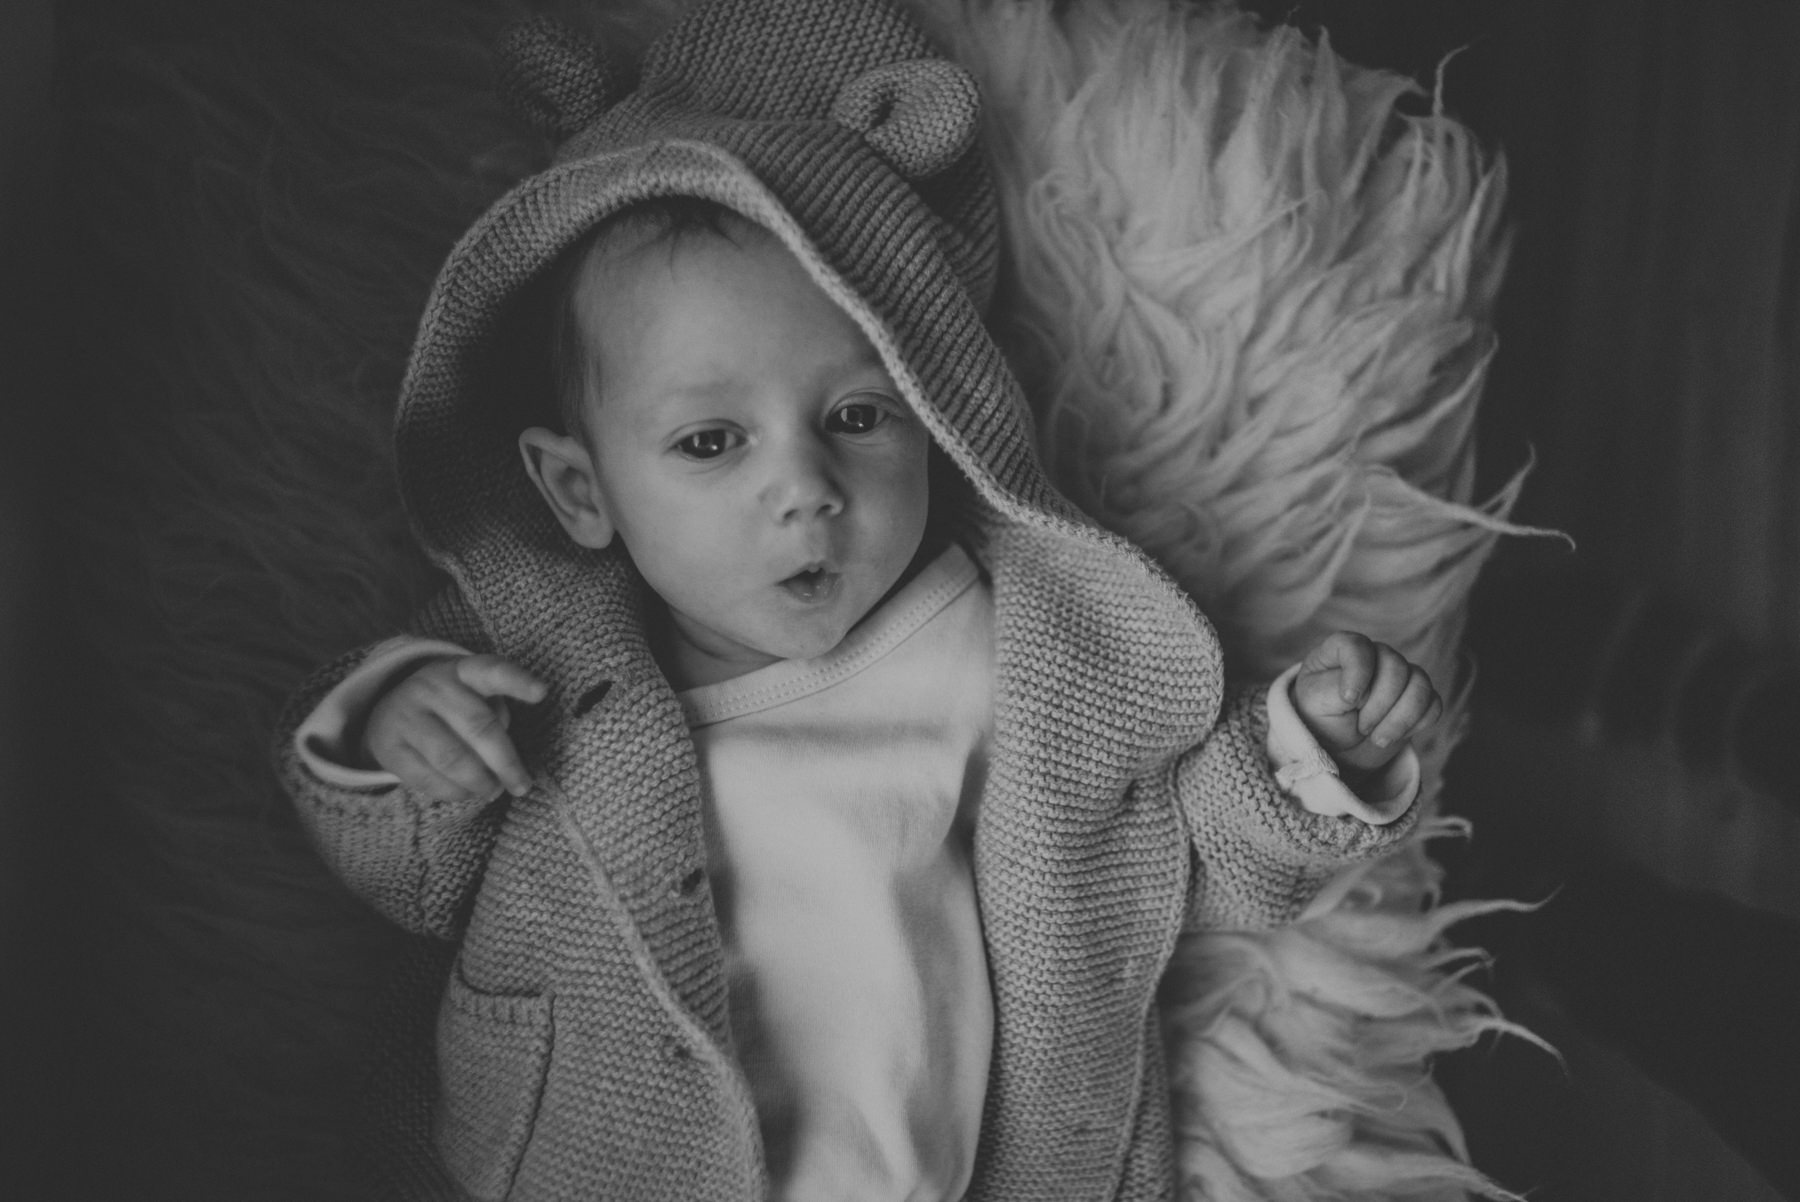 Family Photography at Mad Maple Inn in Creemore, Ontario by Sarah Tacoma.